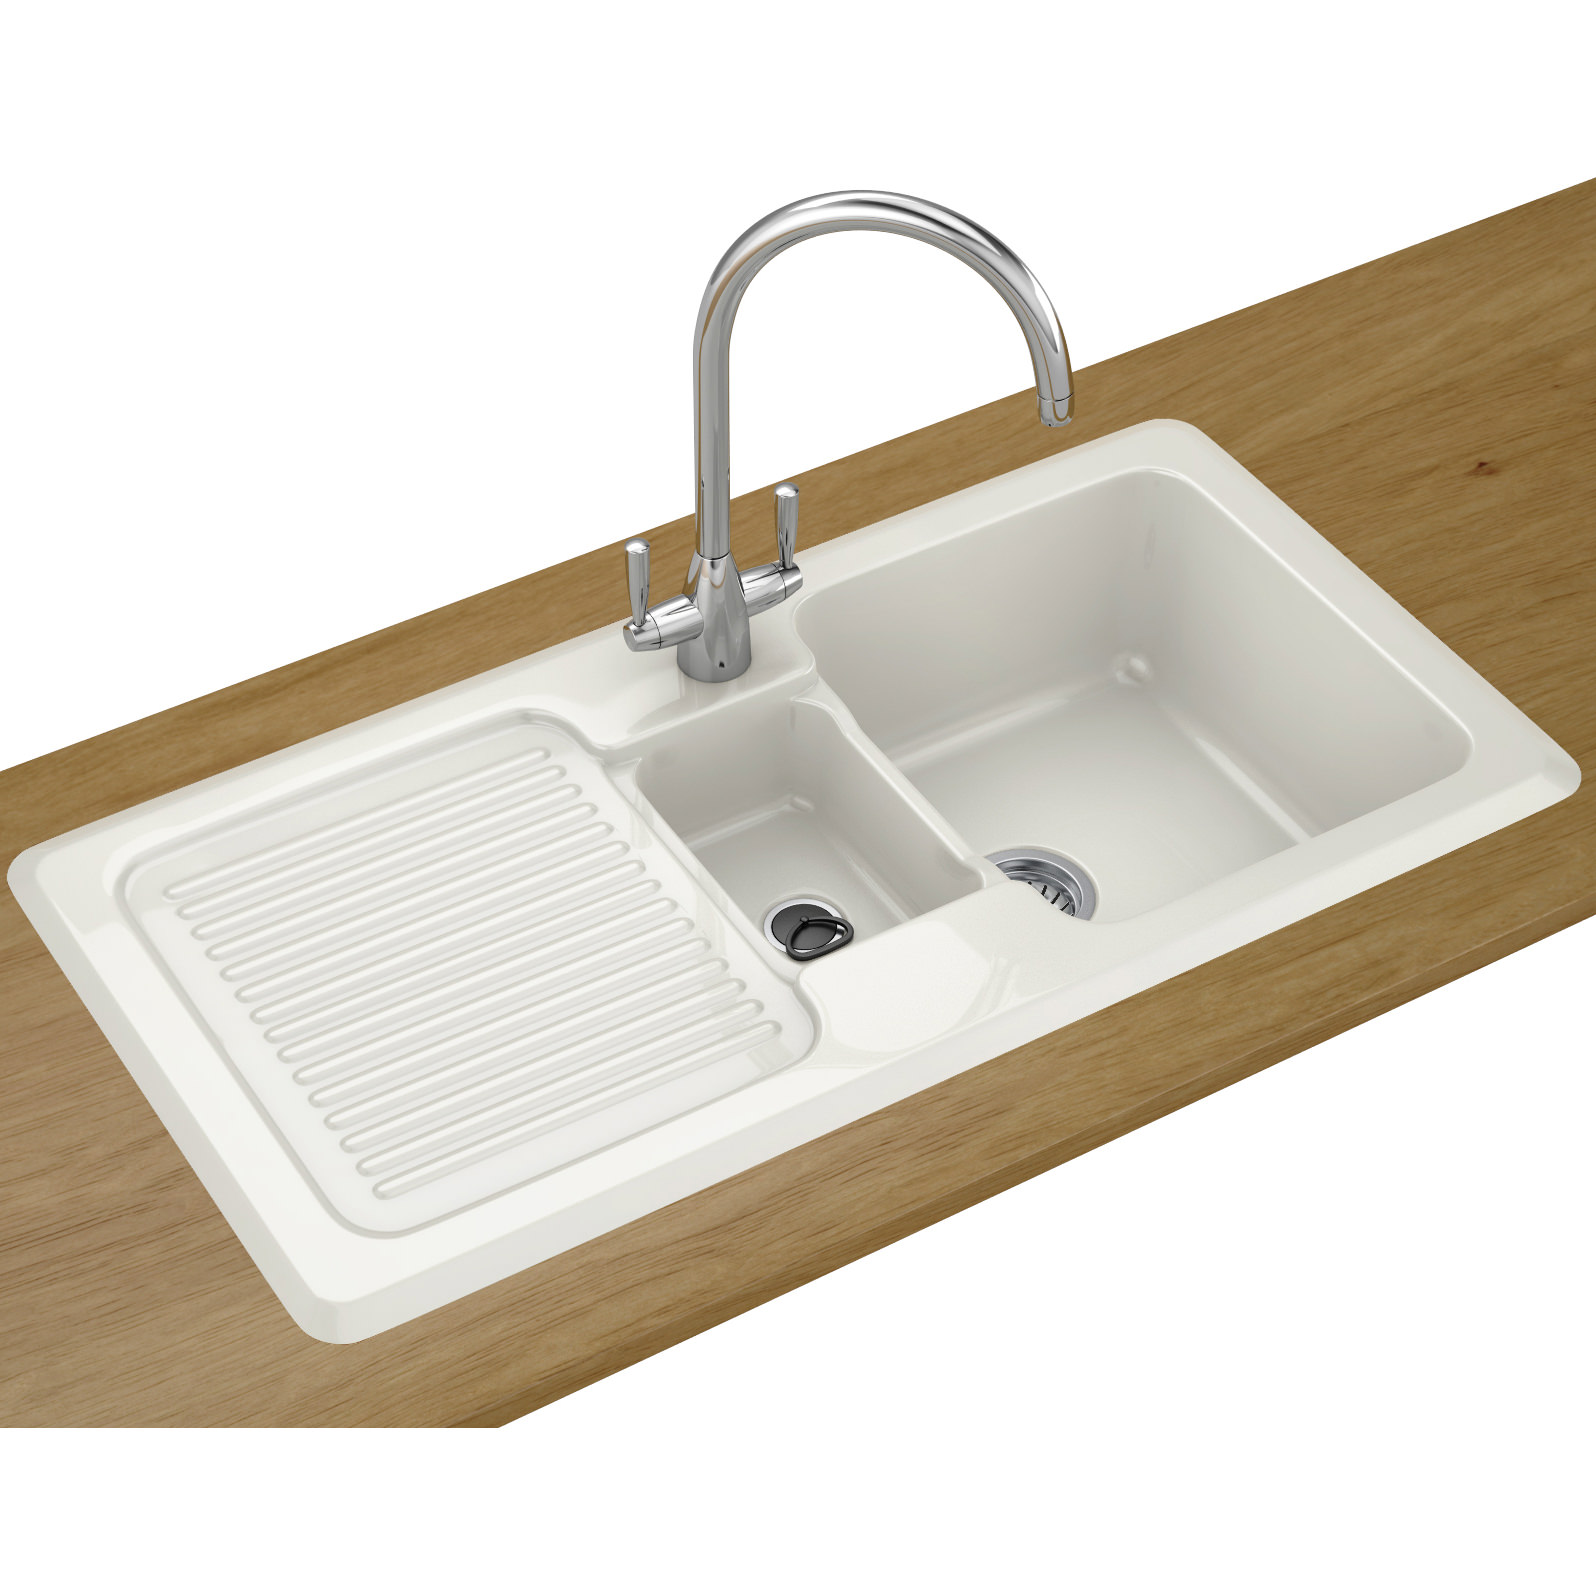 Franke V And B Vbk 651 Ceramic White 1 5 Bowl Inset Sink